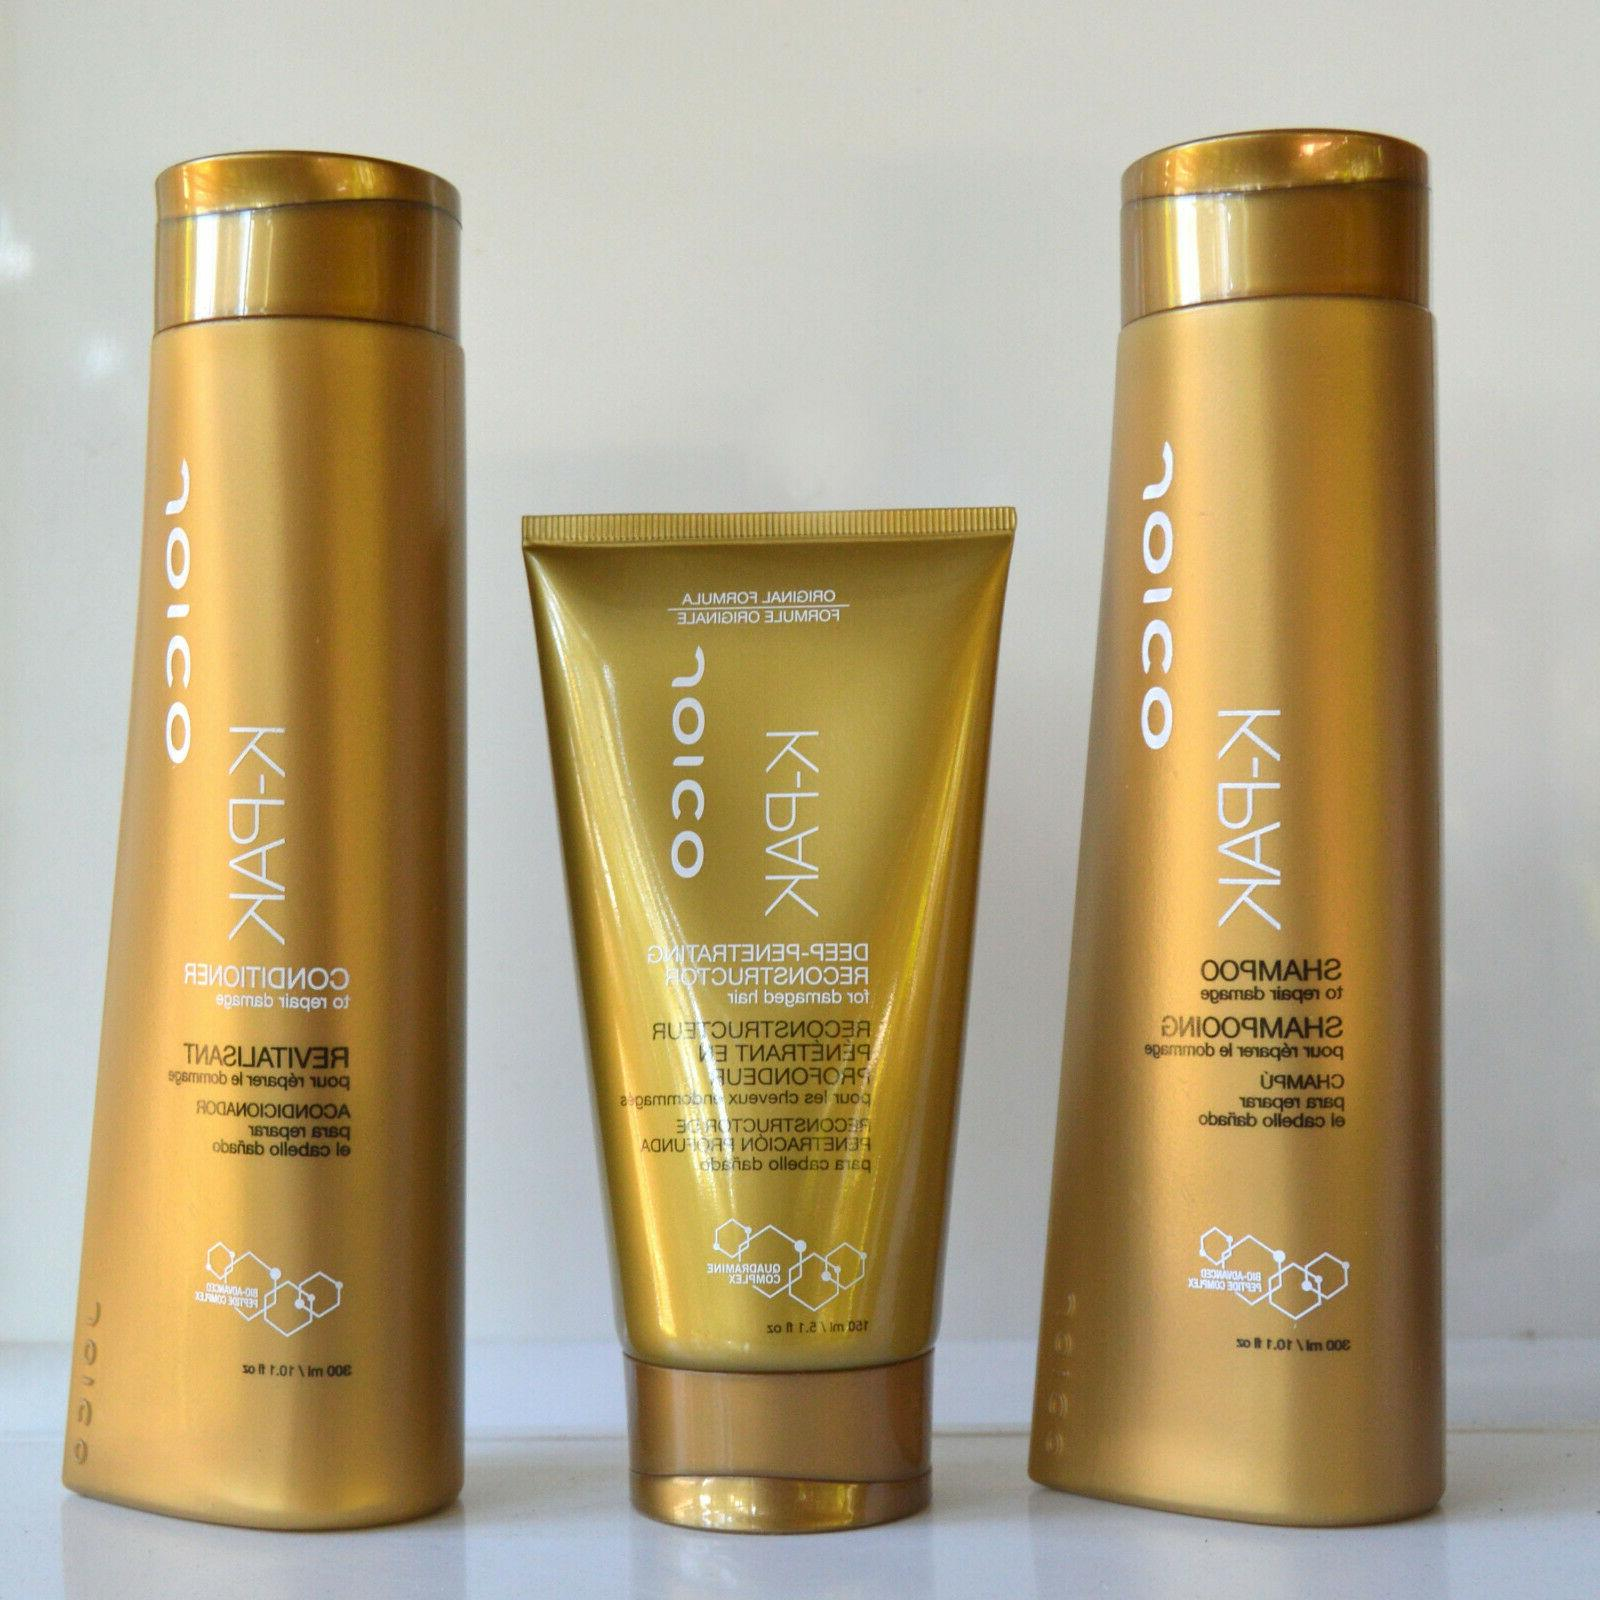 JOICO KIT CONDITIONER FOR REPAIR DEEP-PENETRATING RECONST